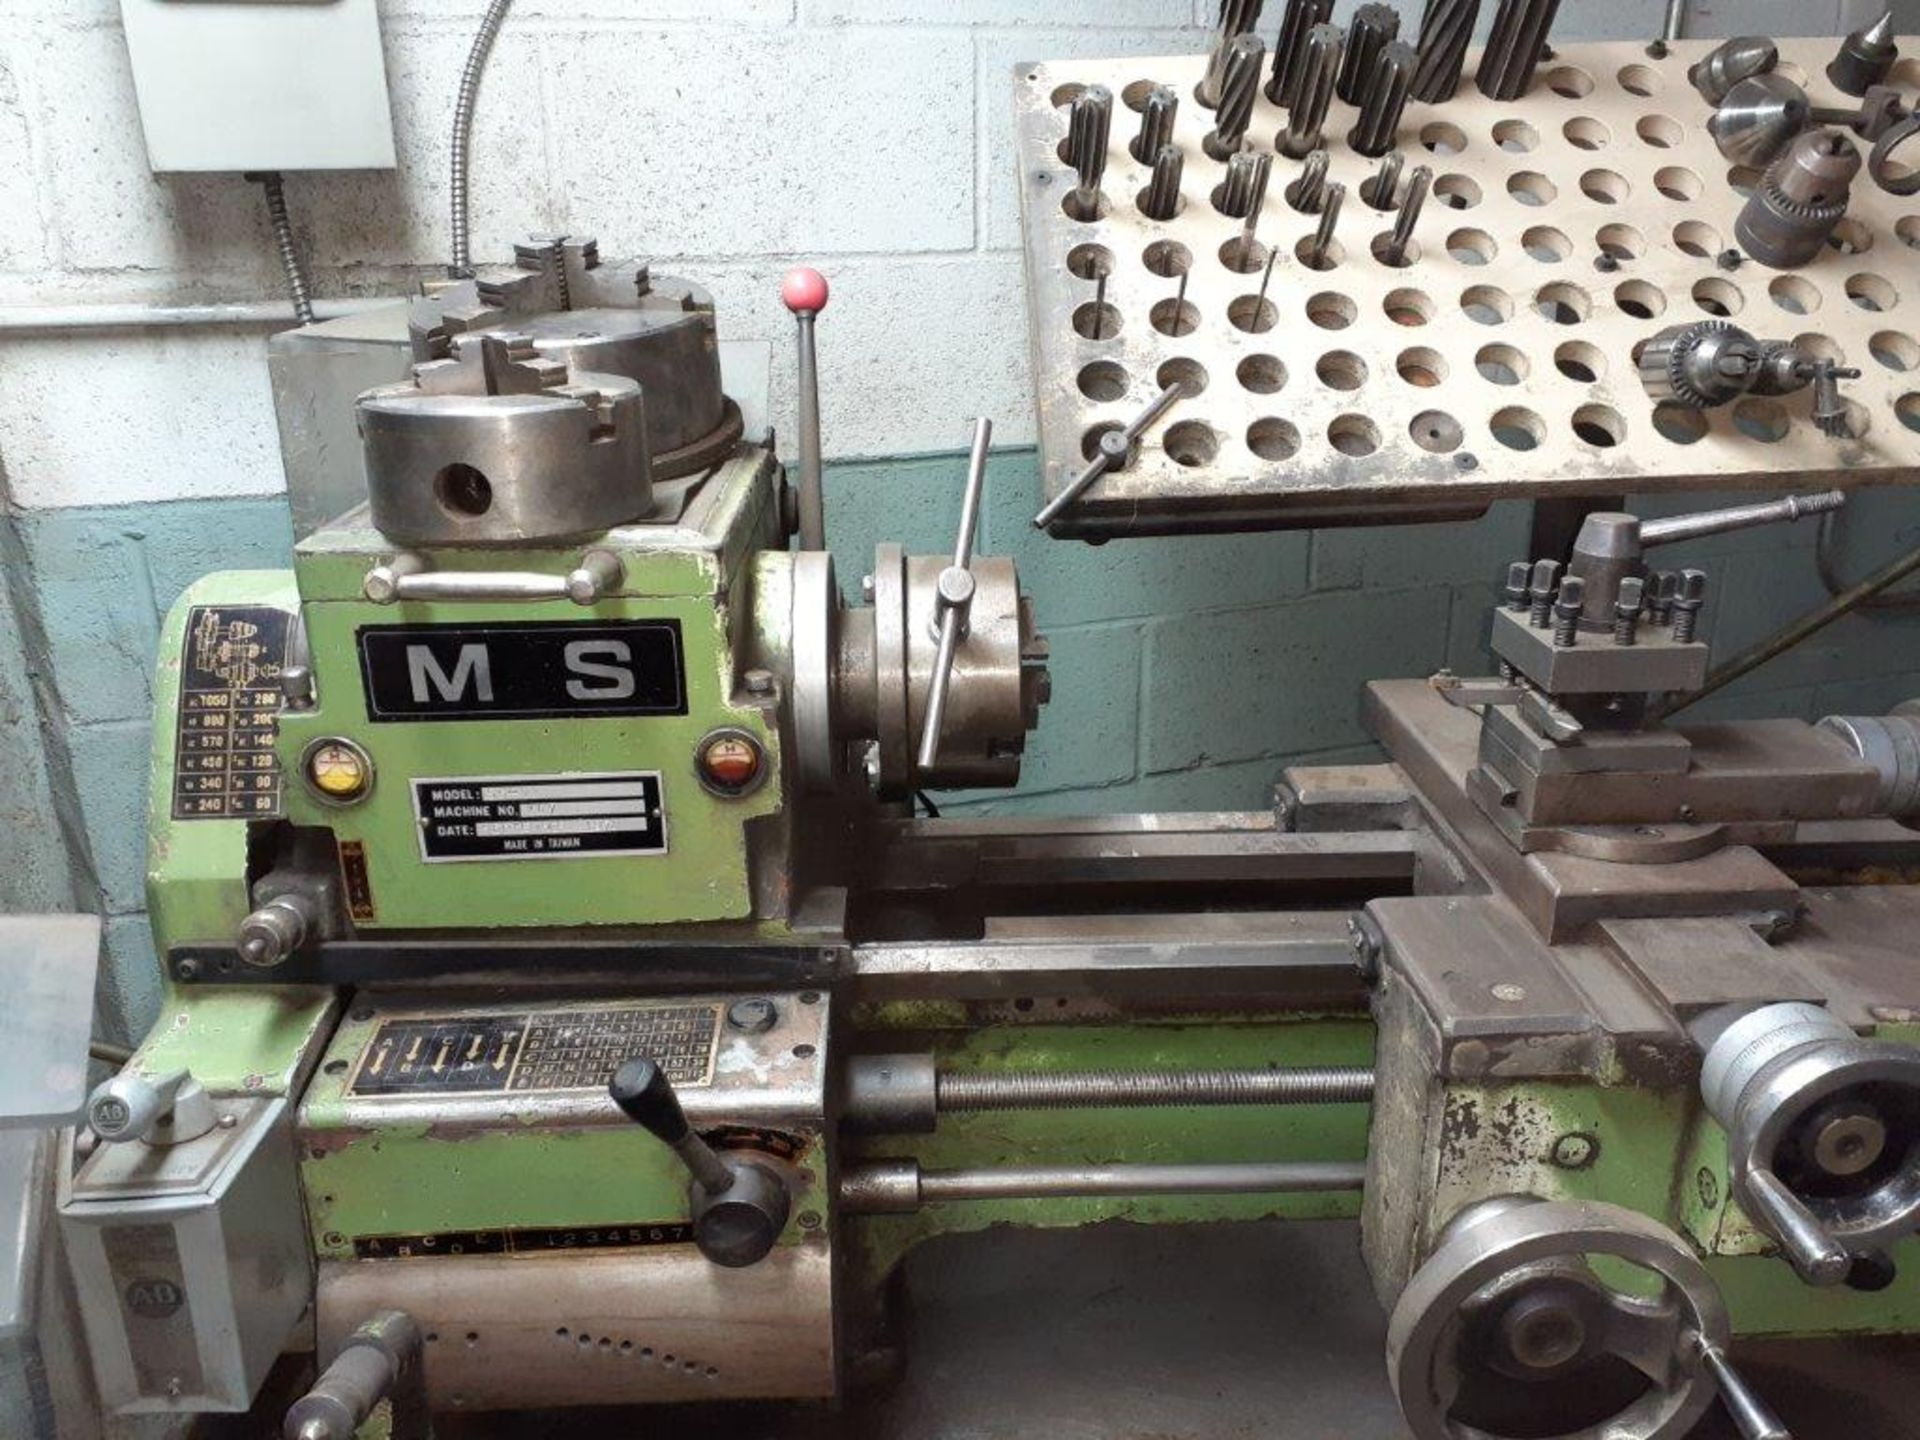 """MS Metal Lathe, 20"""" open, mod: SS+23, c/w Wooden Base & Chuck Drills - Image 4 of 4"""